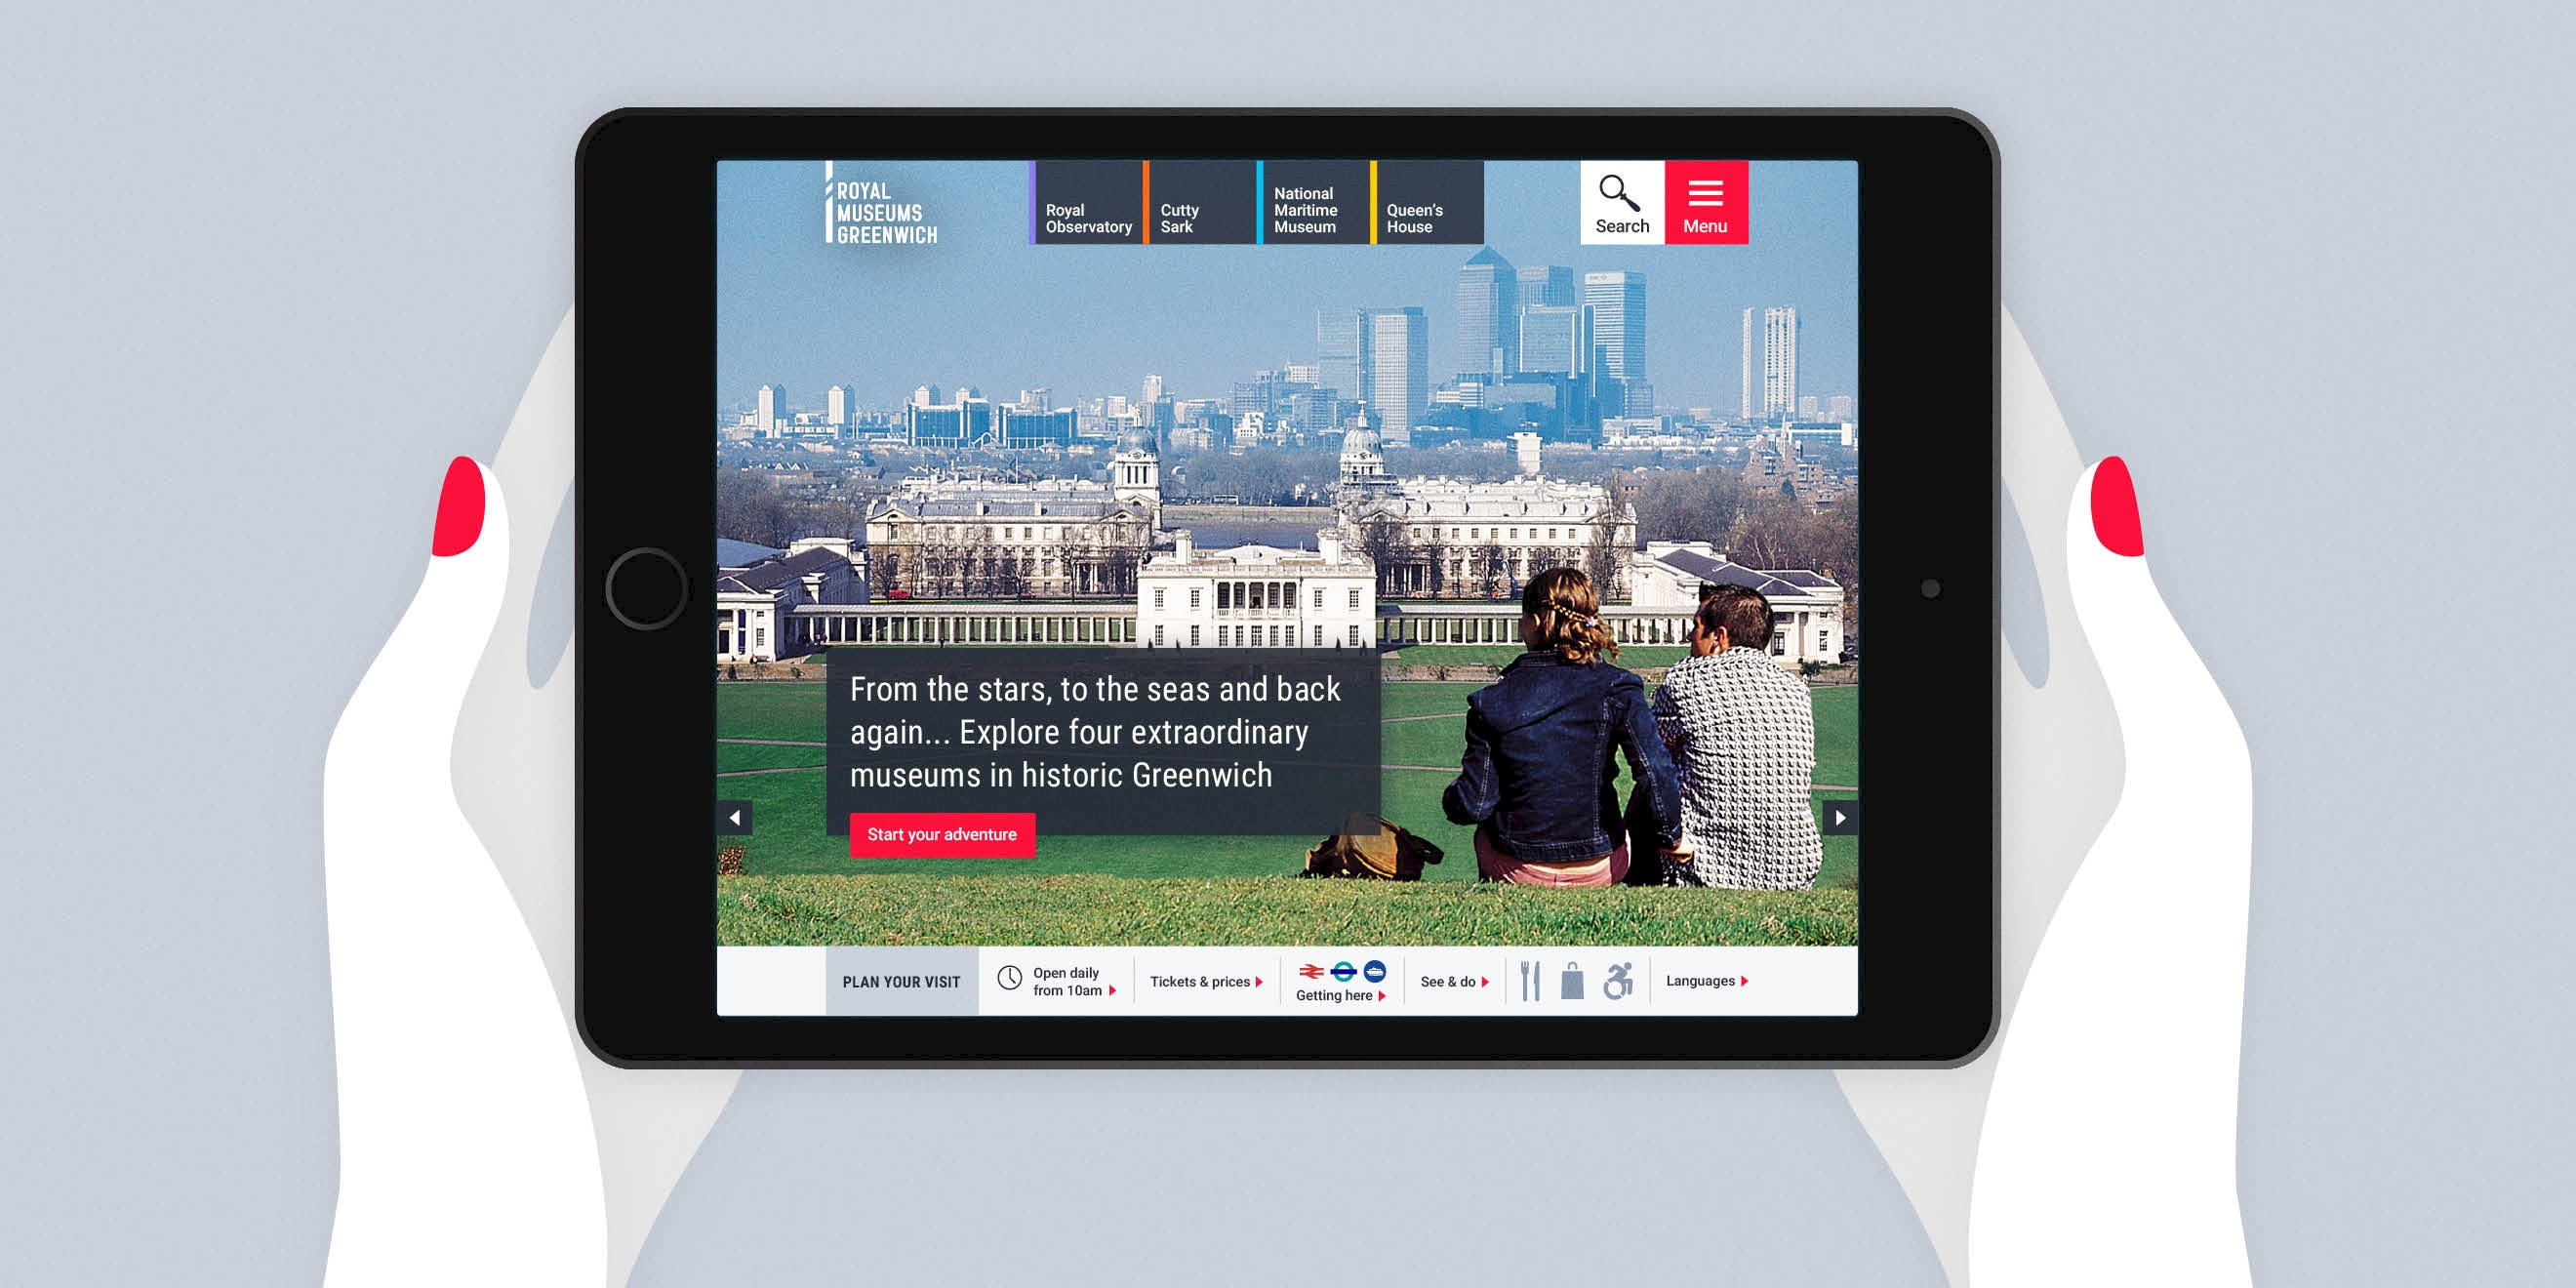 Royal Museums Greenwich website design on tablet - Human After All